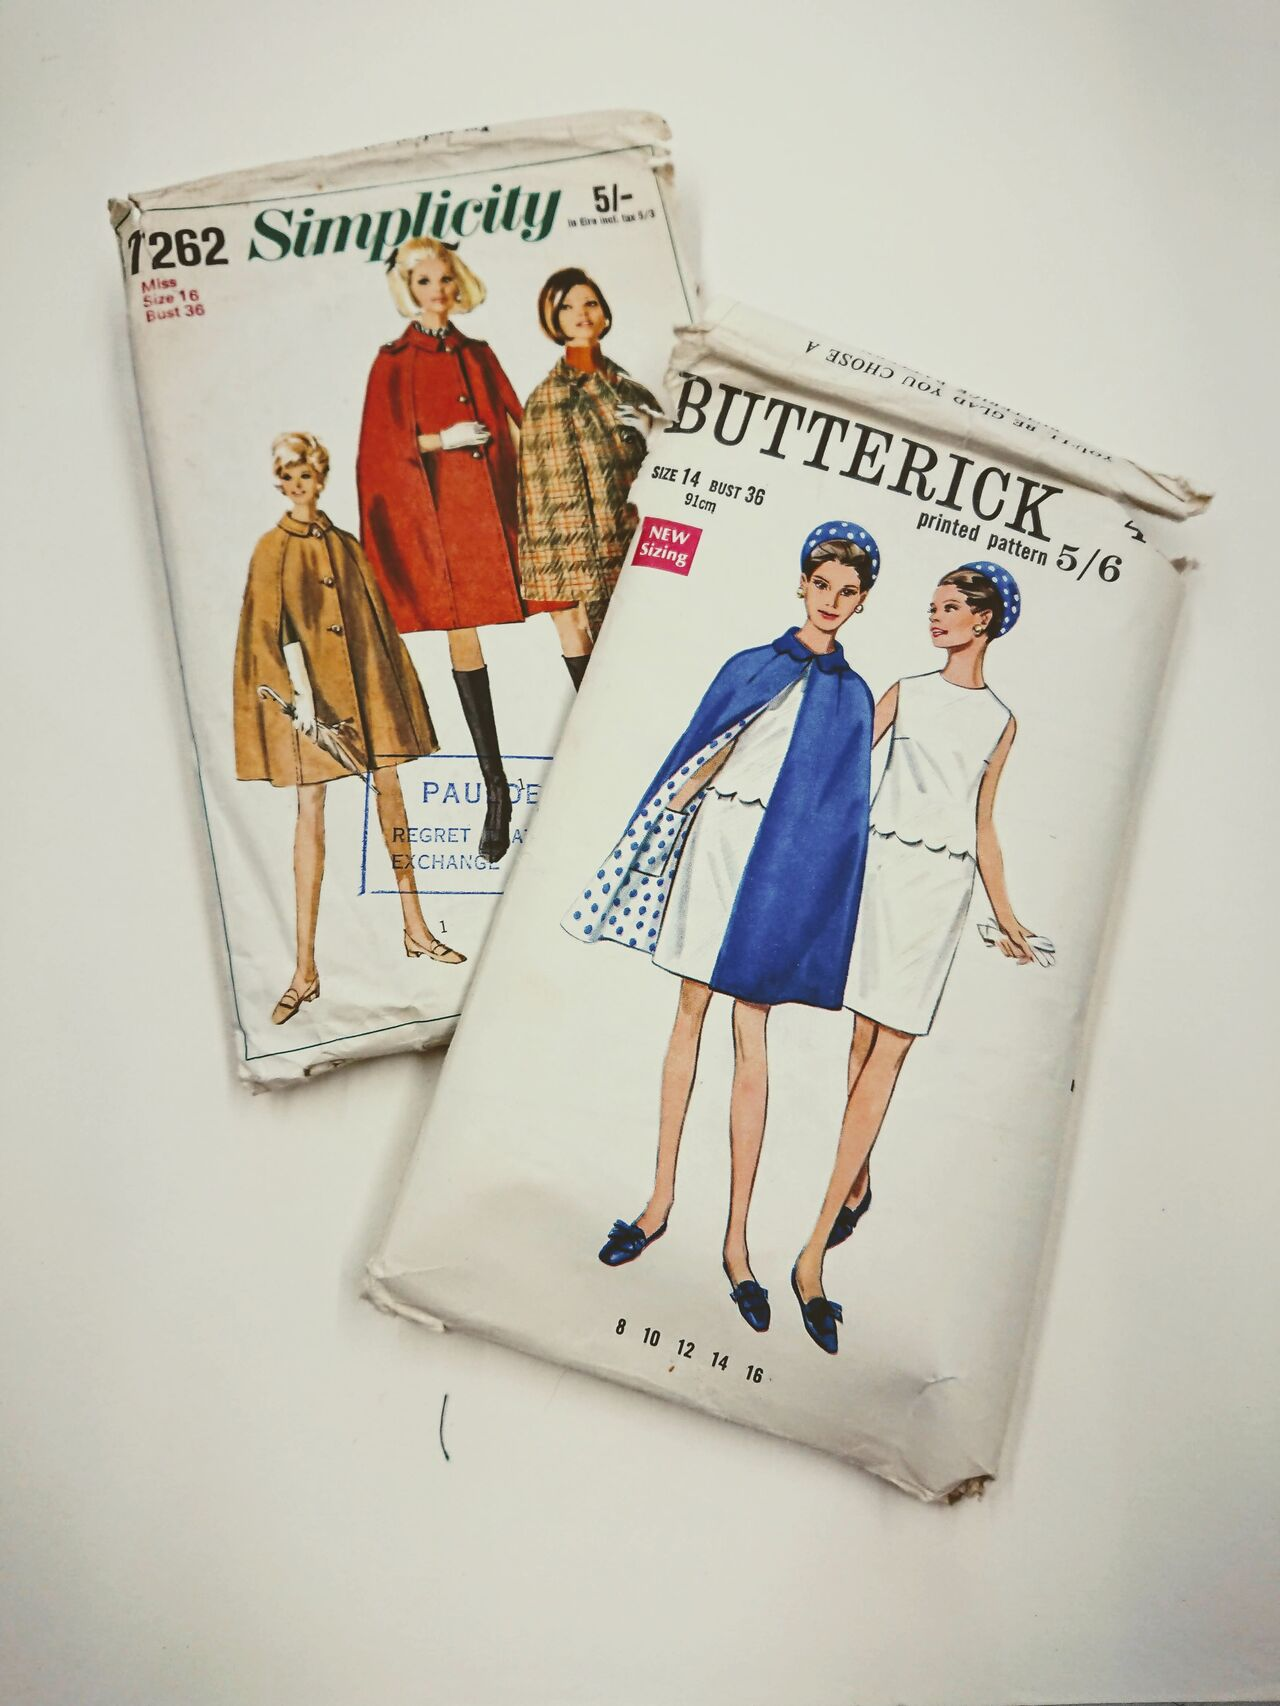 Two packs of Butterick sewing patterns with illustrations of capes on the front.